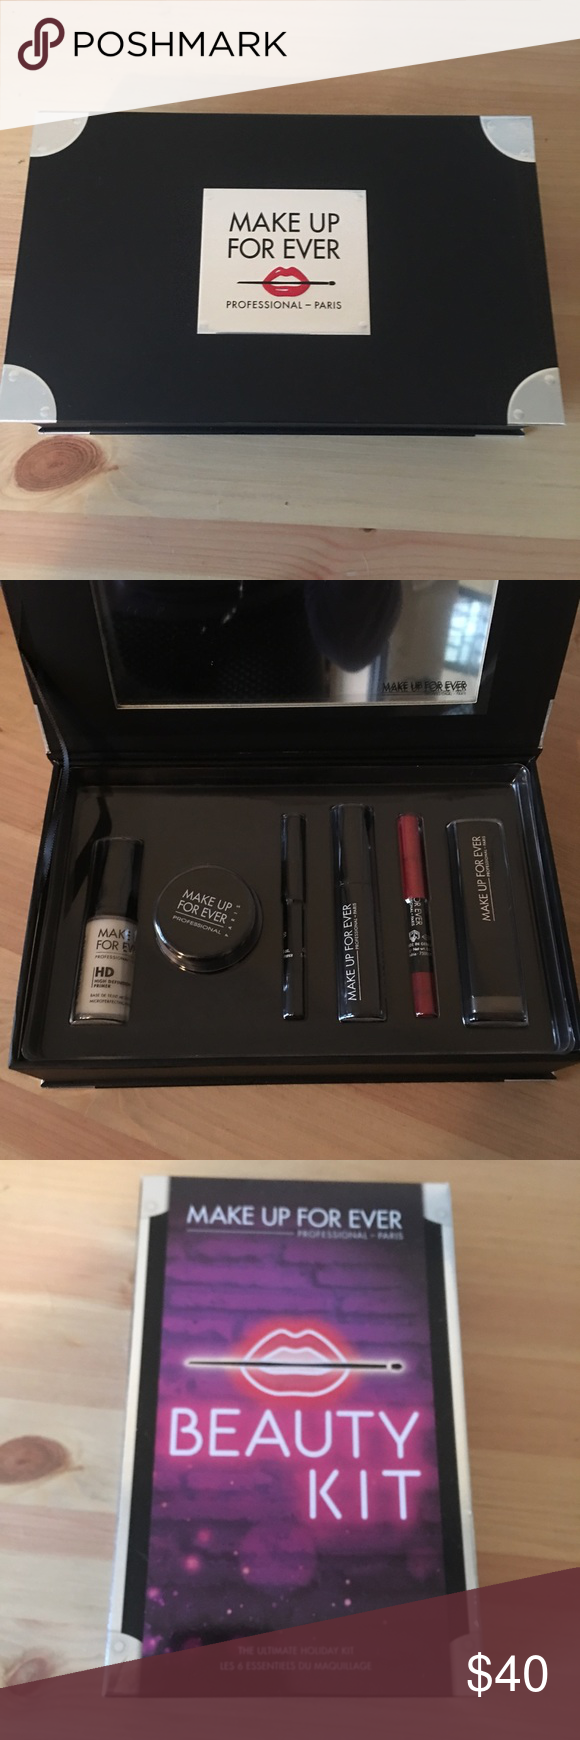 Makeup Forever Beauty Kit What it is A set of six